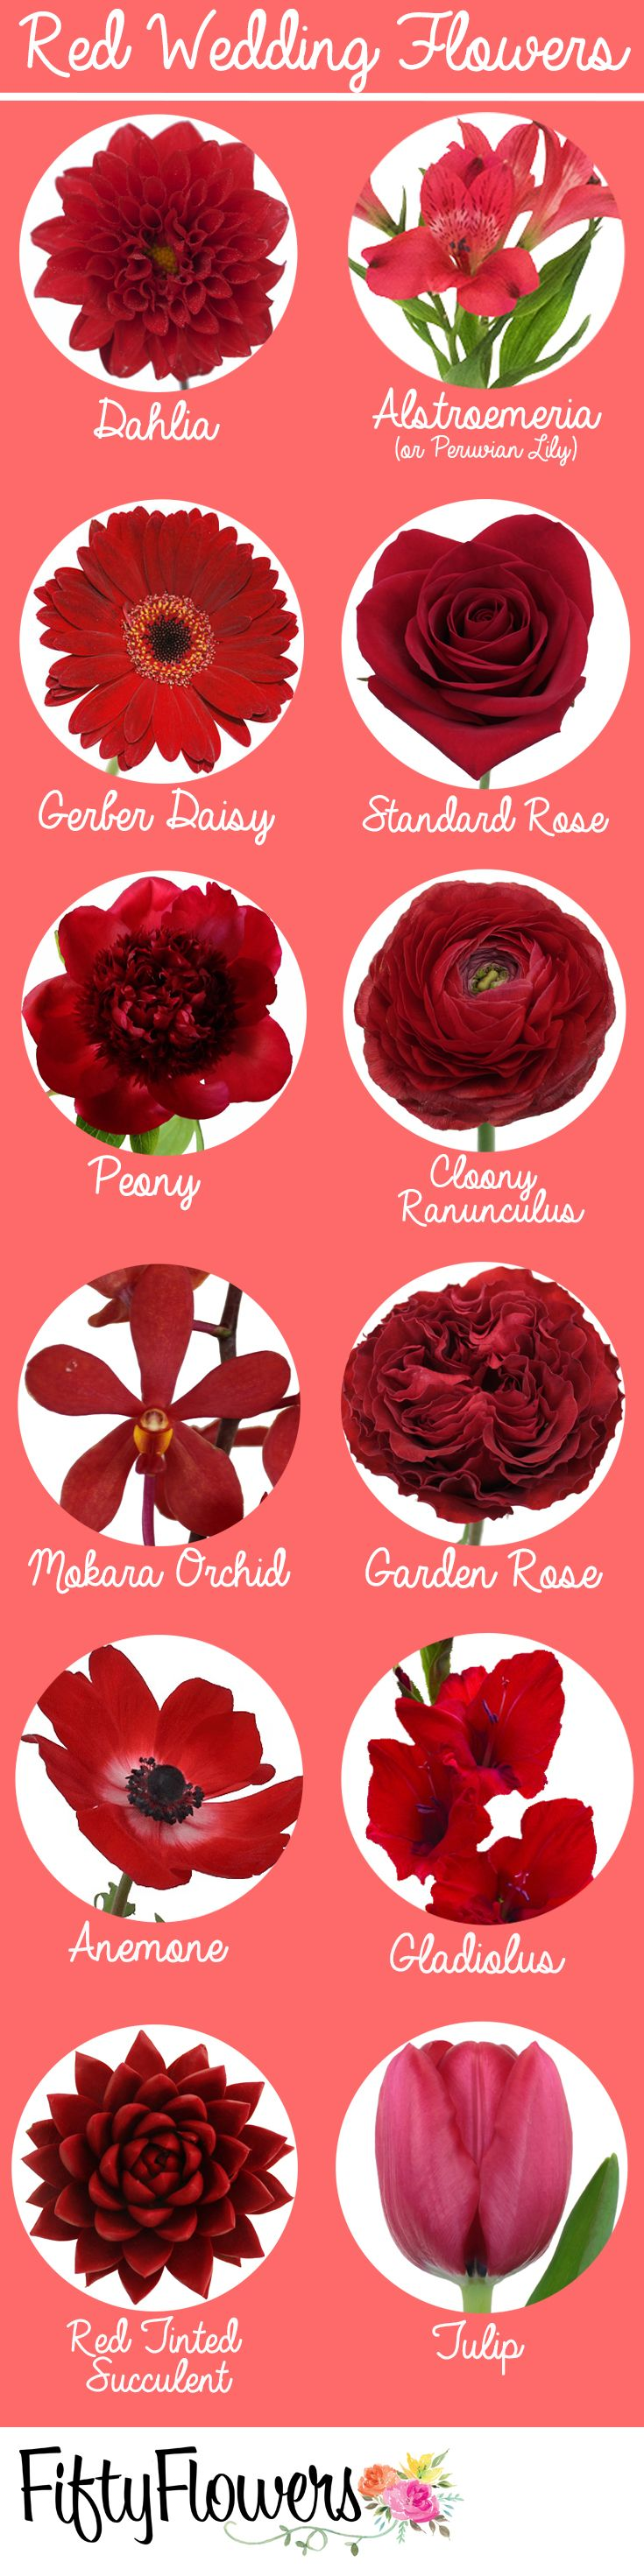 Shop for flowers by color at FiftyFlowers.com! | Flower Names ...